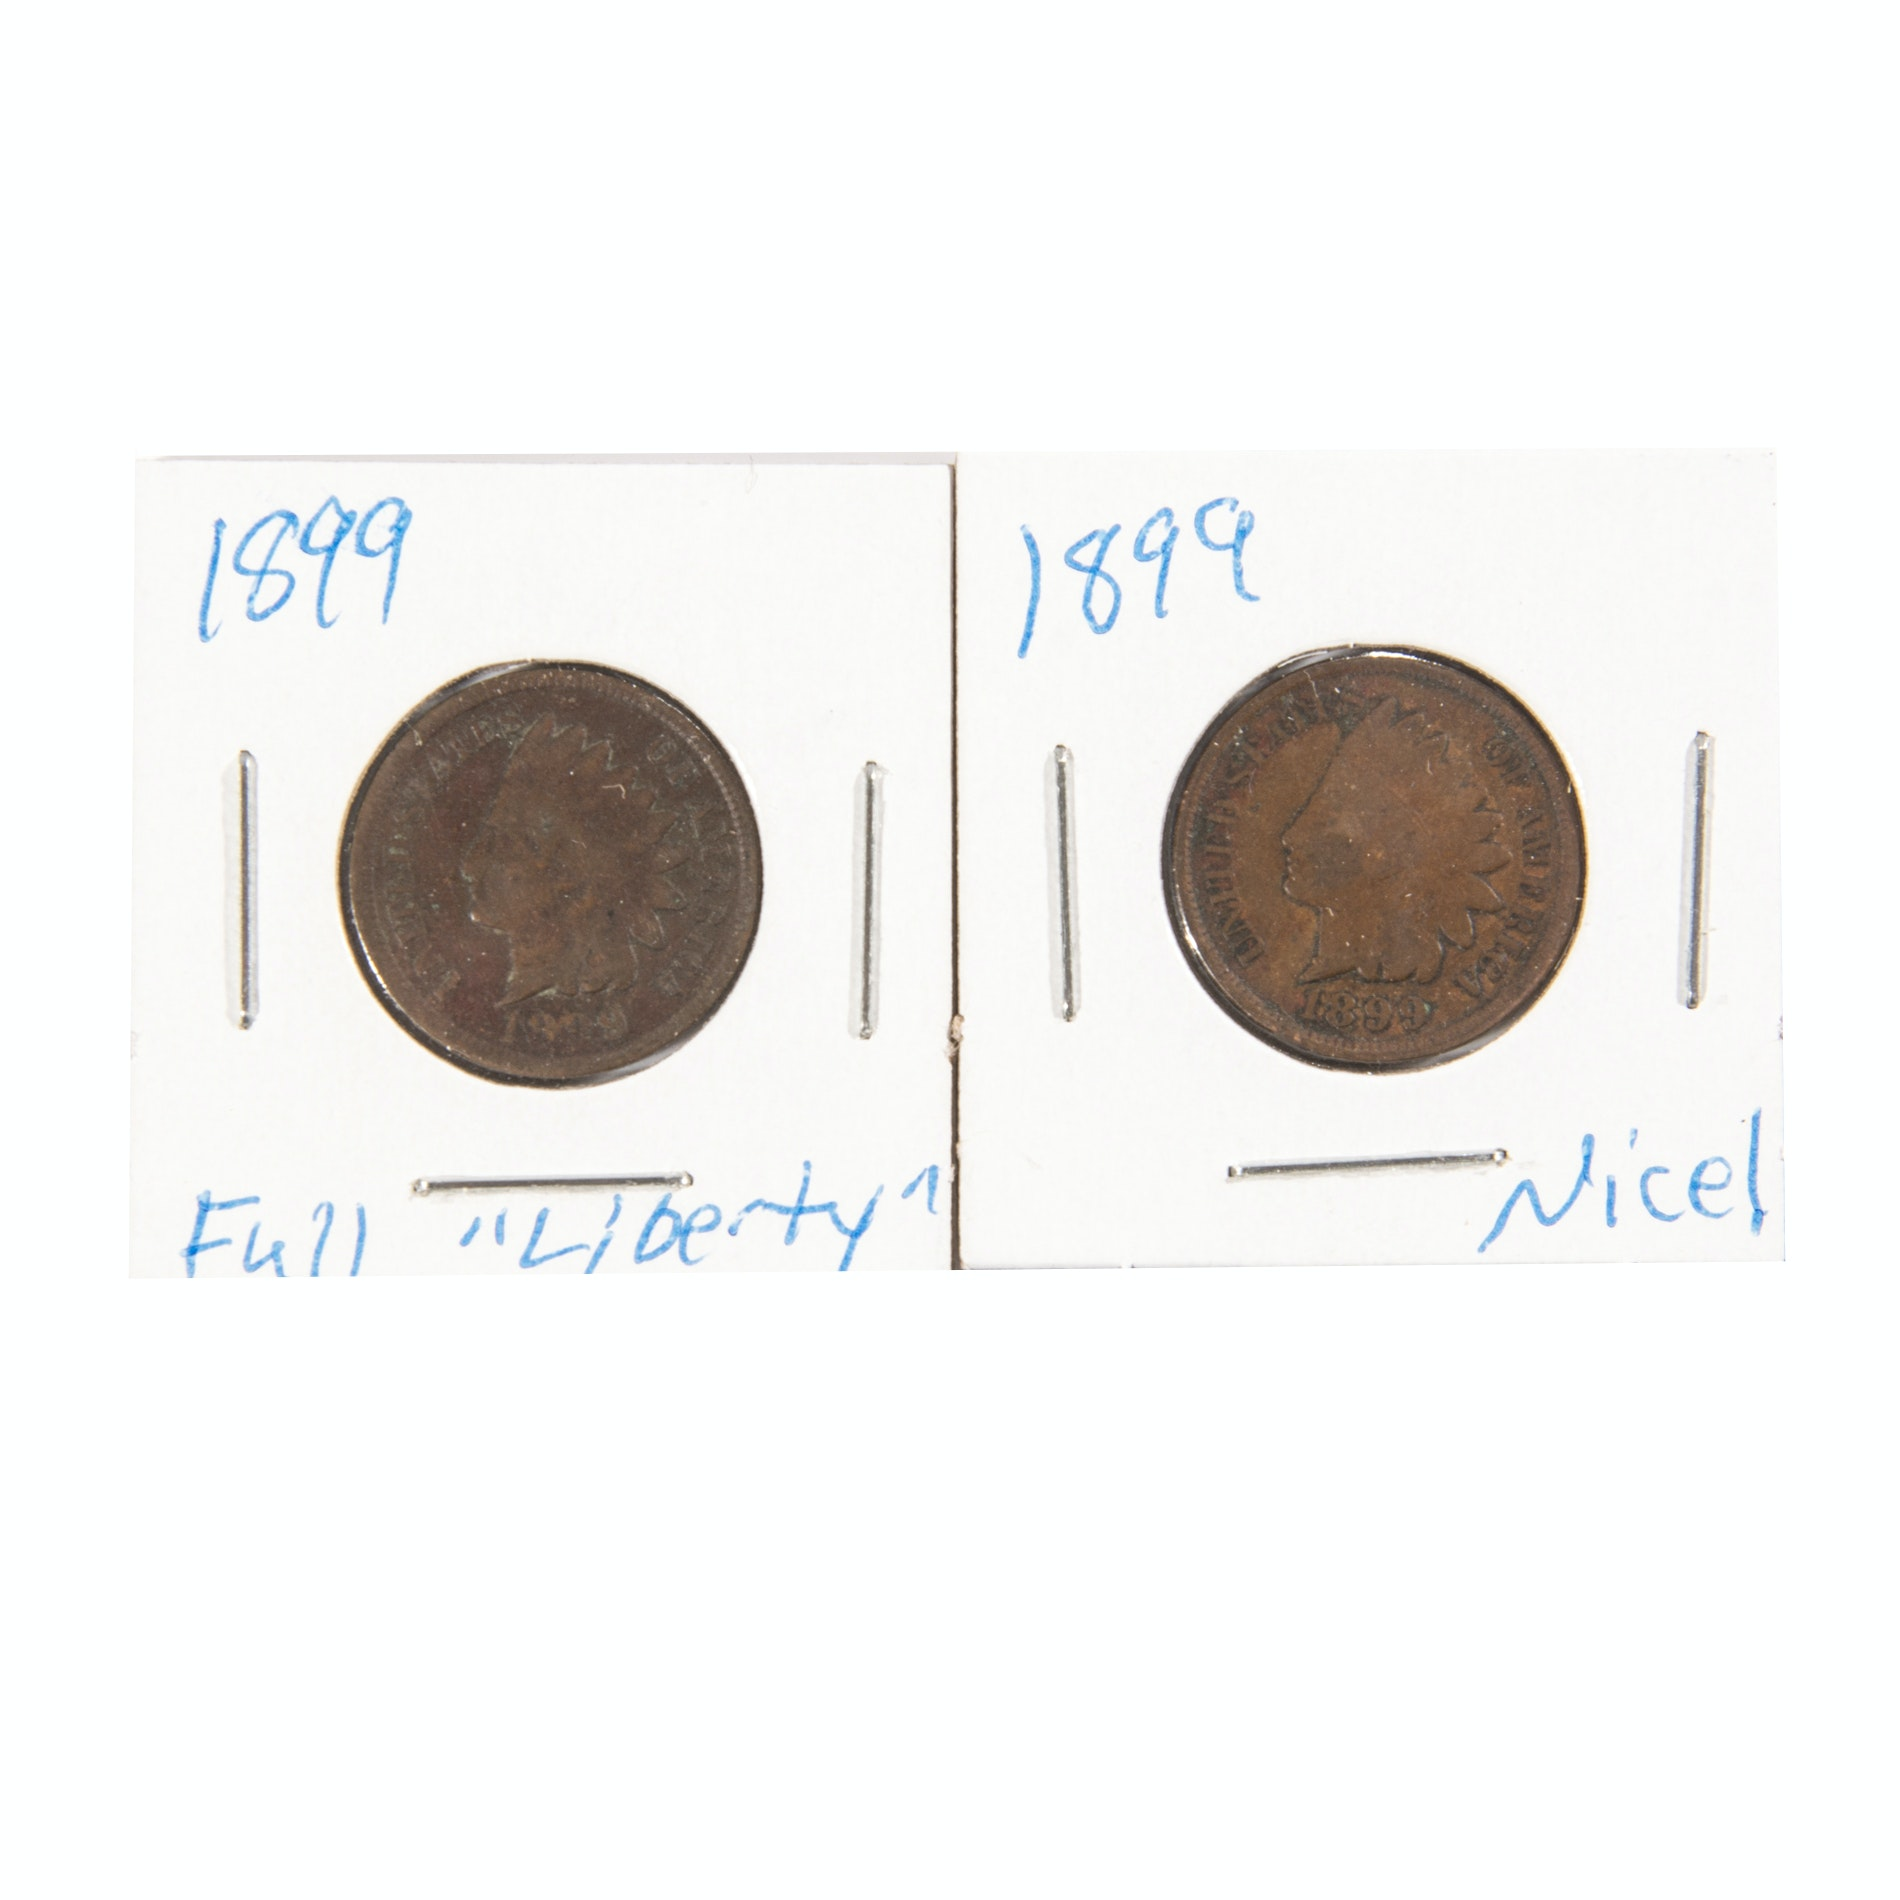 1899 Indian Head One Cent Coins